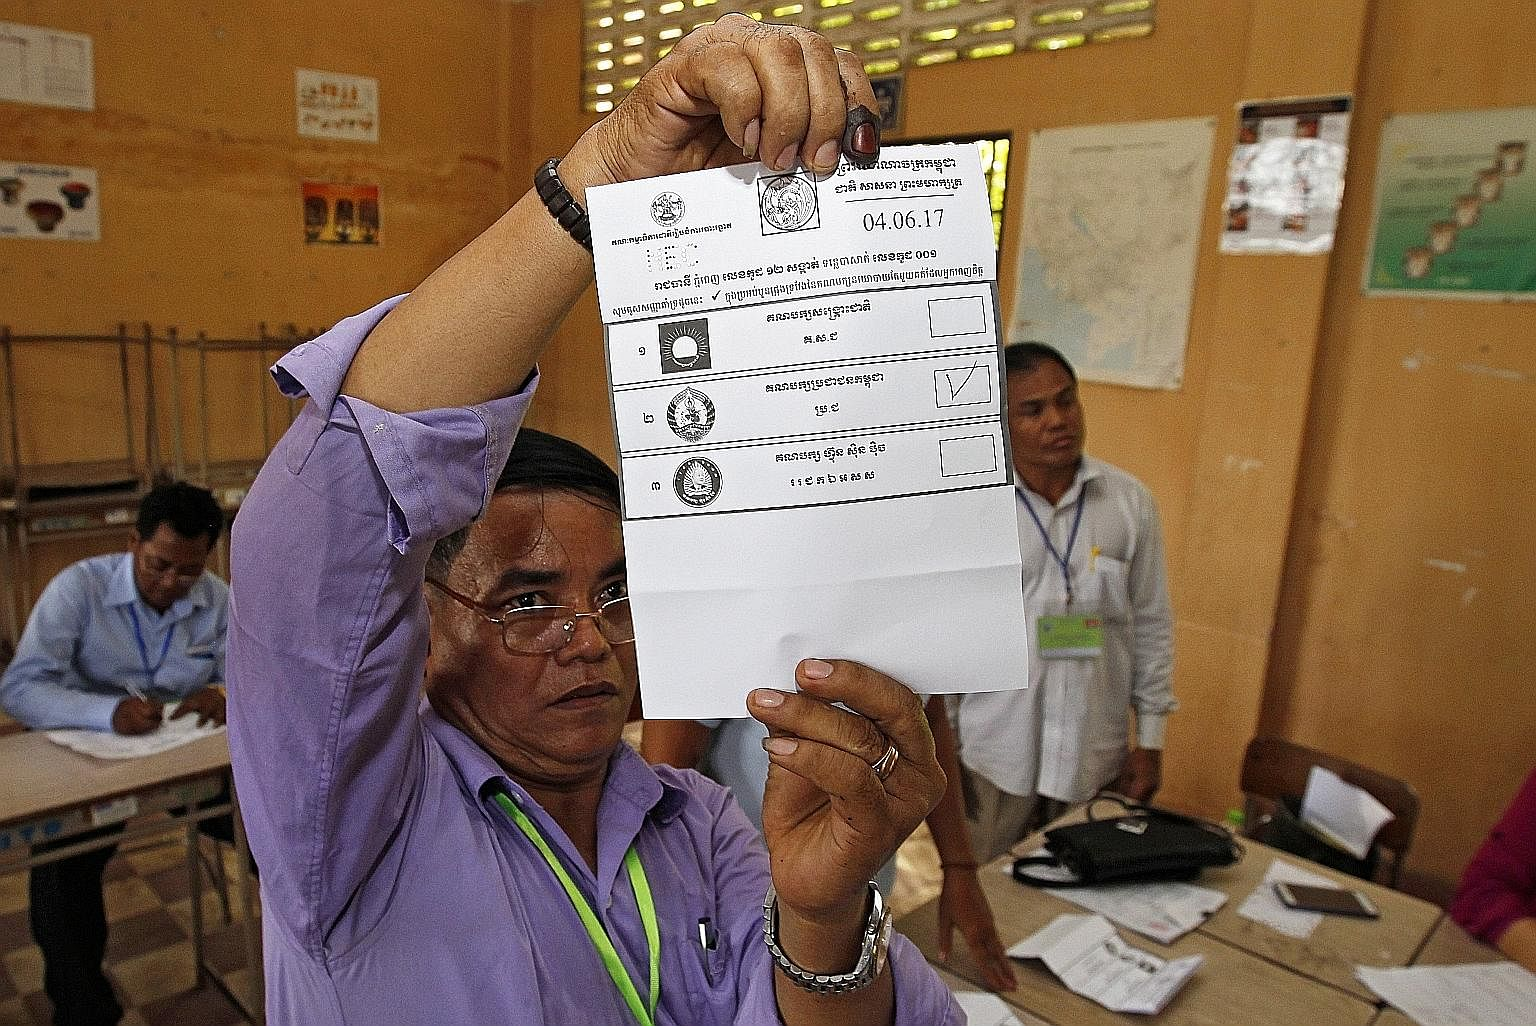 Sunday's commune polls in Cambodia were widely seen as a gauge of public sentiment in the lead-up to the more significant general election next year.